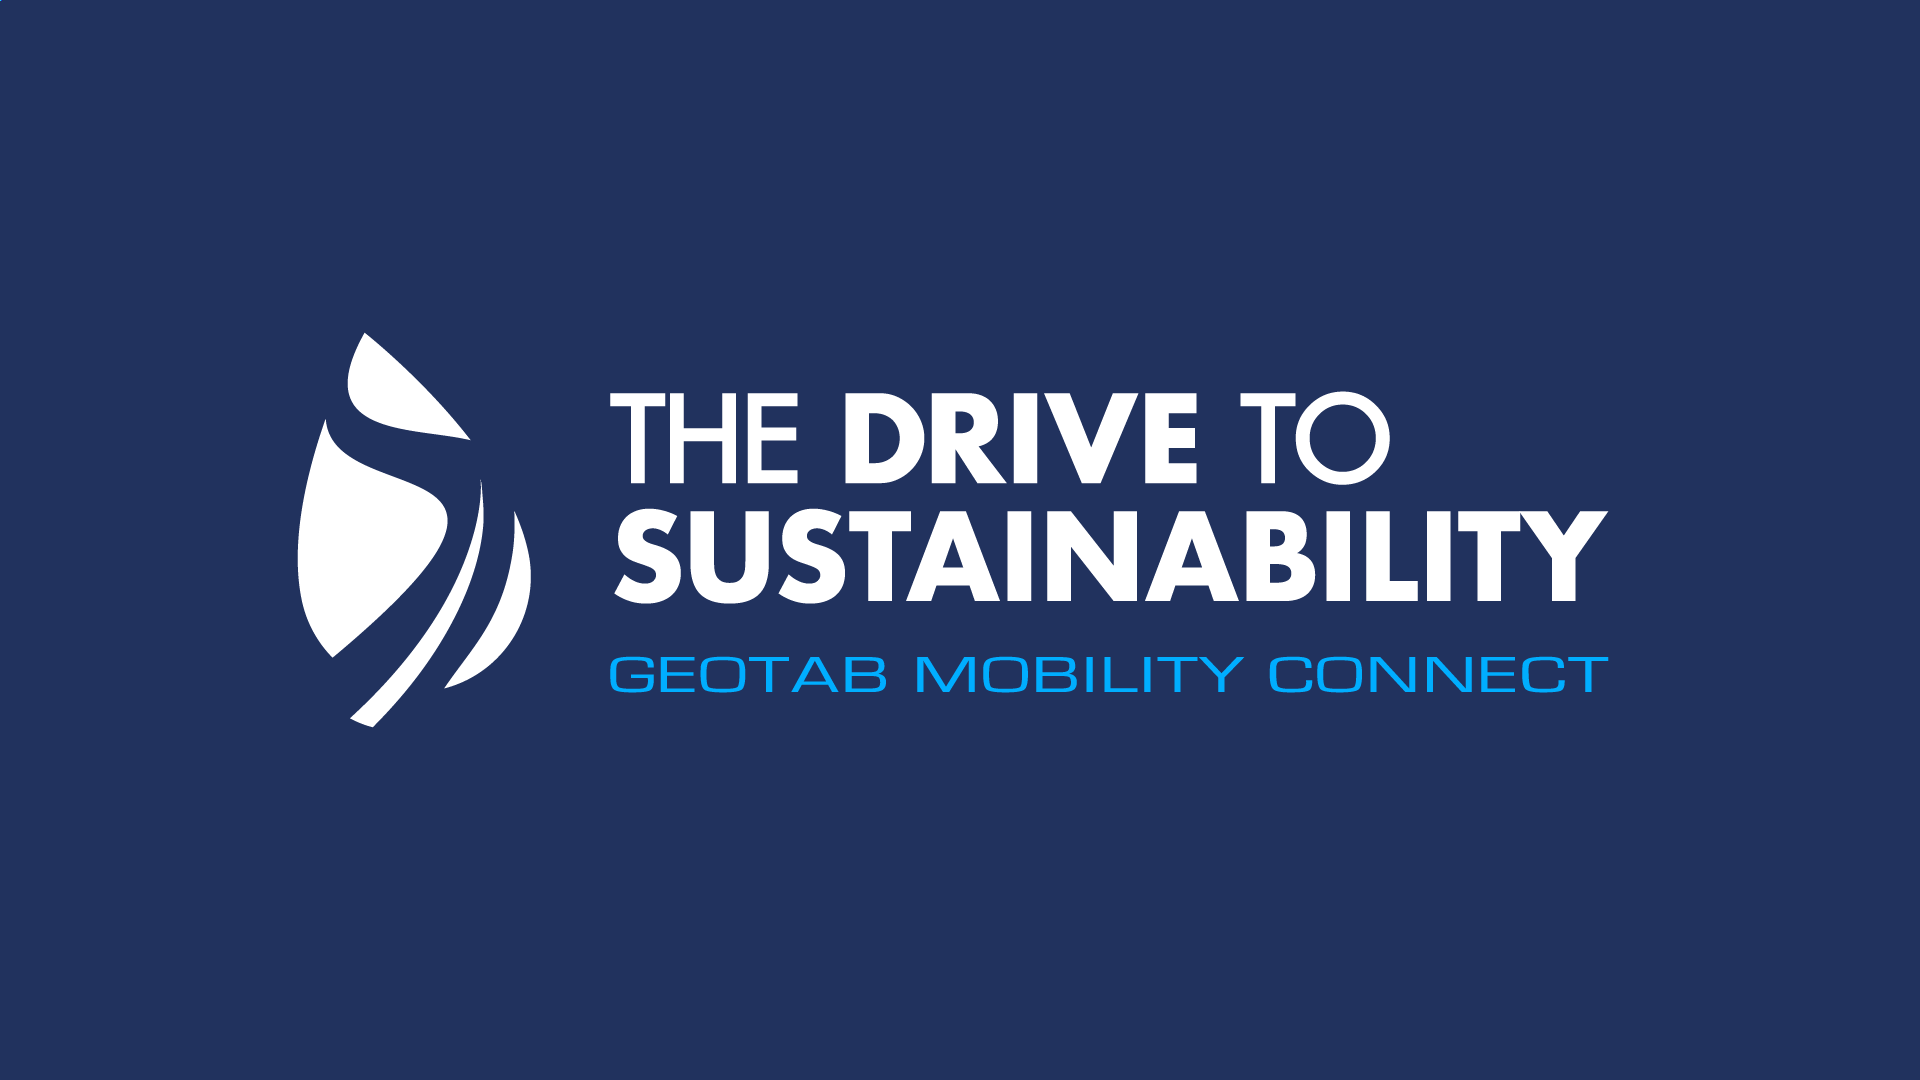 The Drive to Sustainability logo.